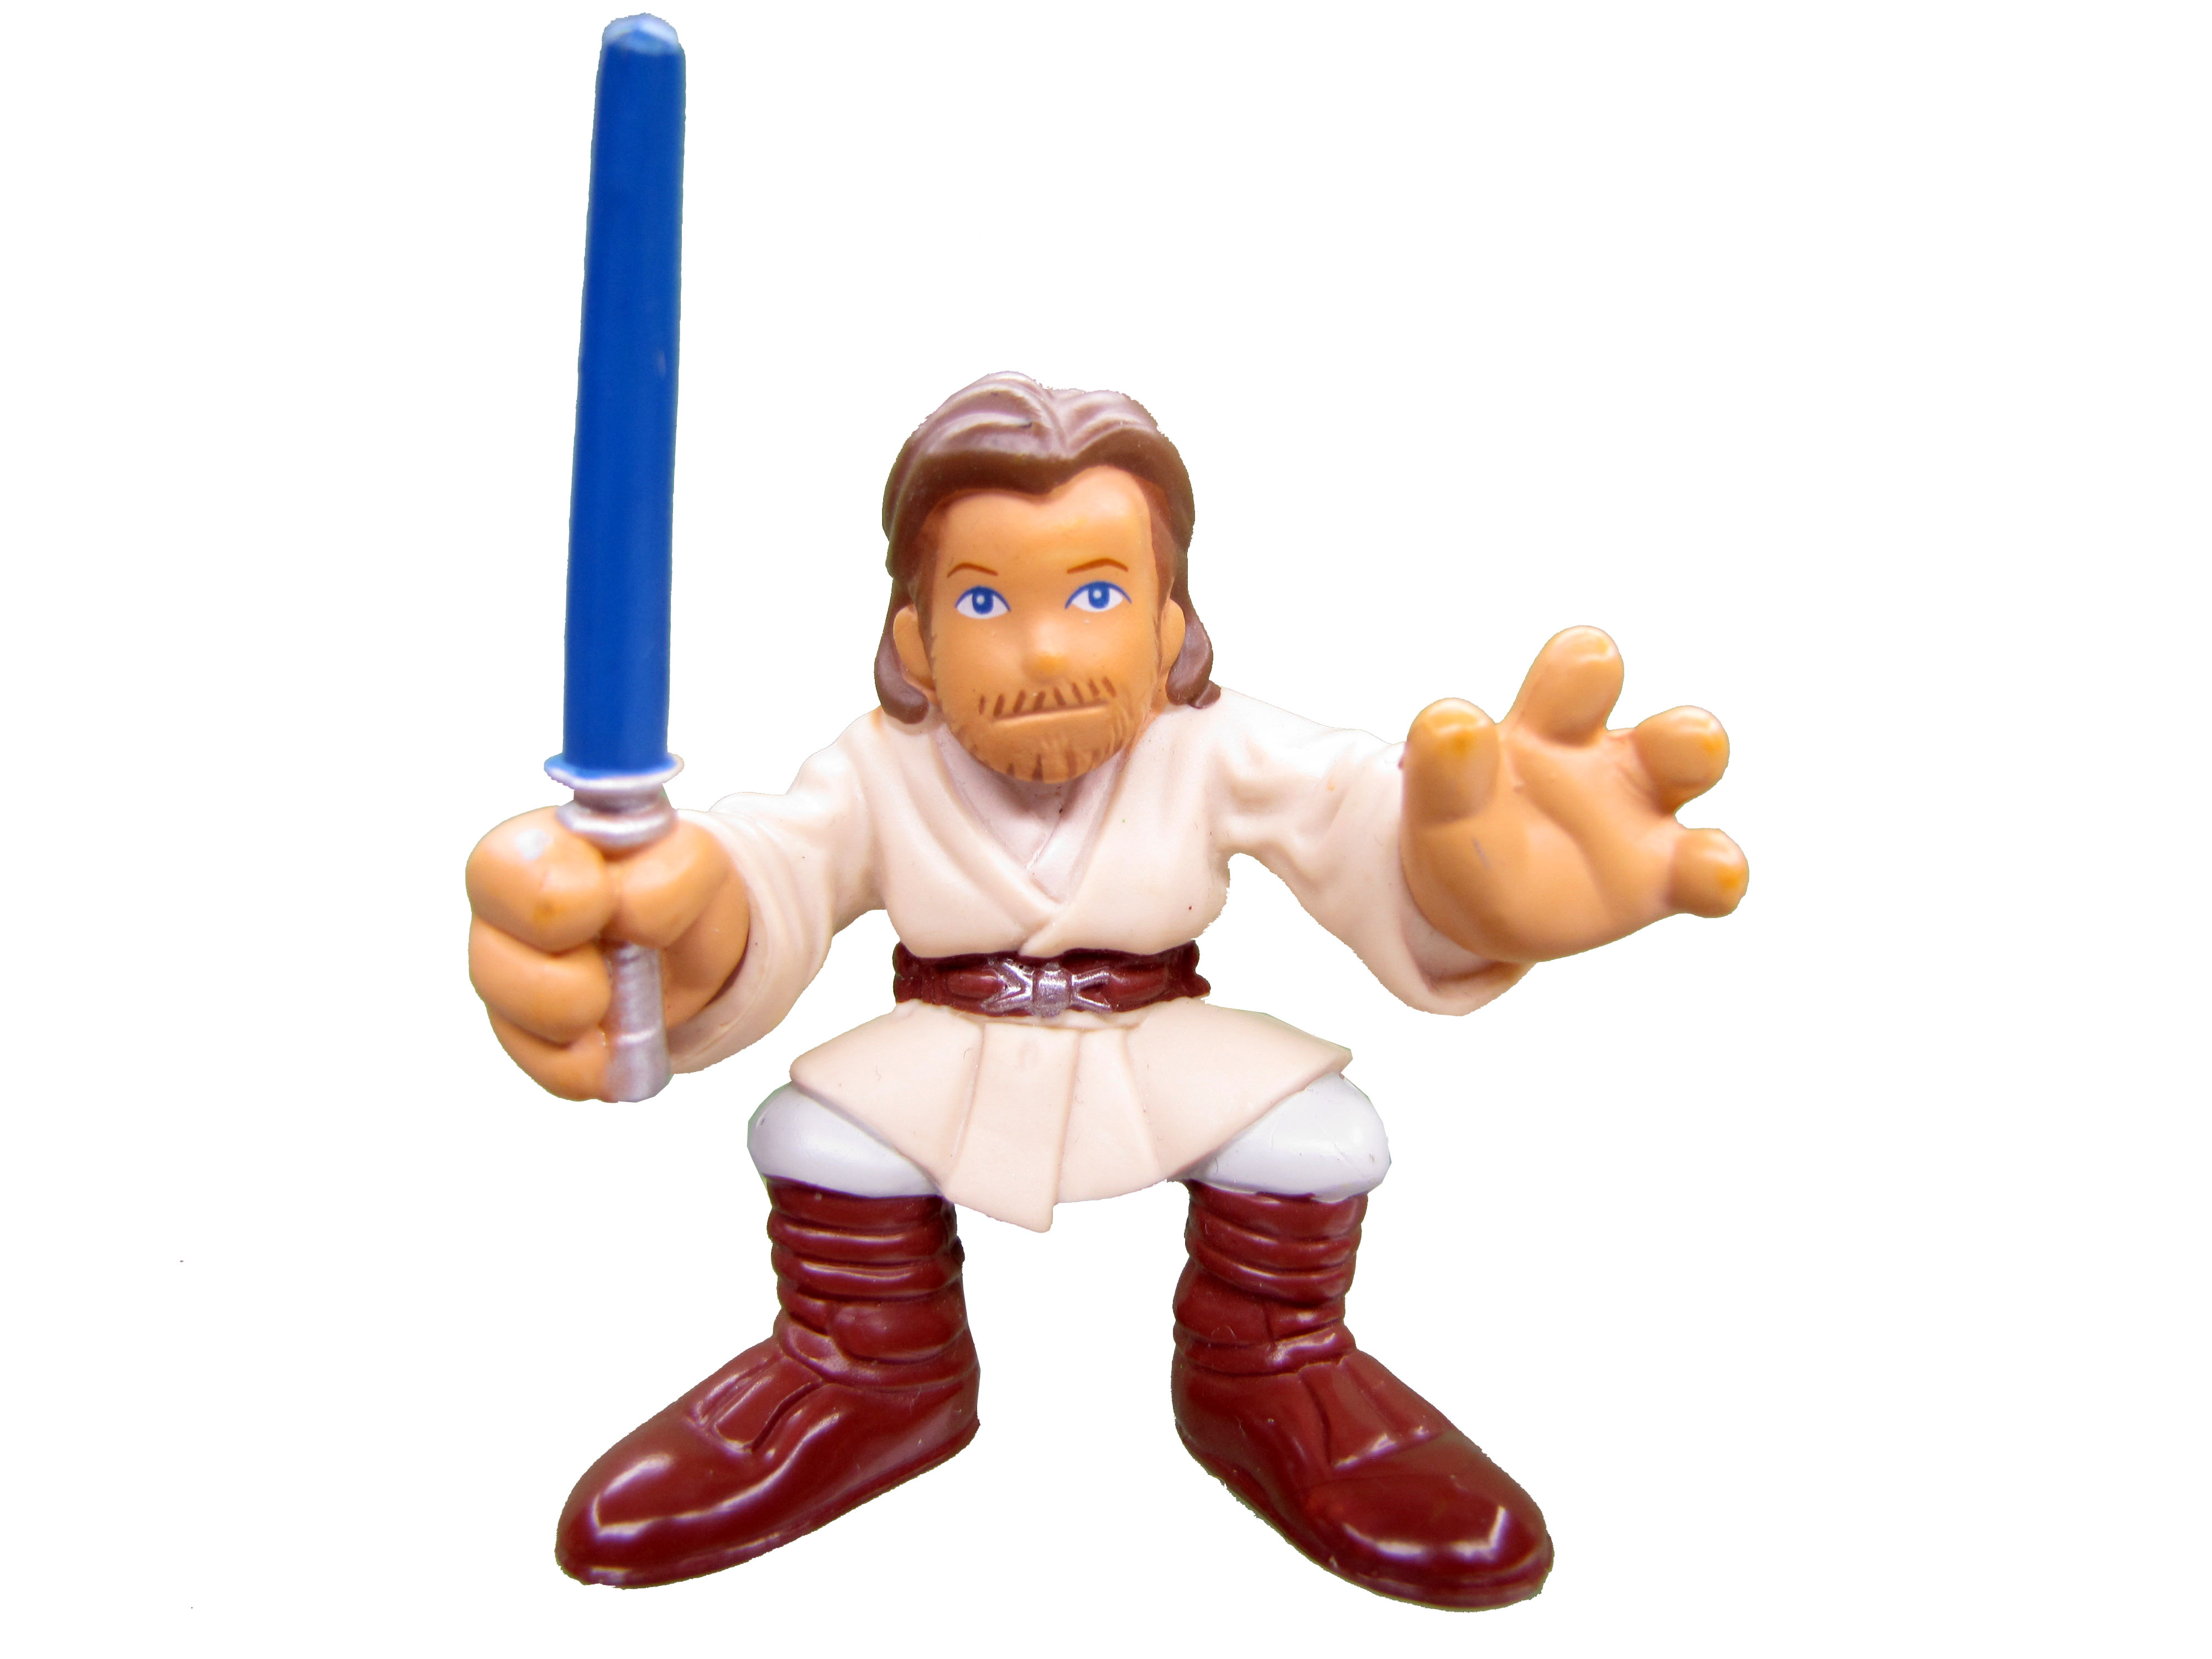 Star Wars Galactic Heroes Obi-Wan Kenobi Battle of Geonosis